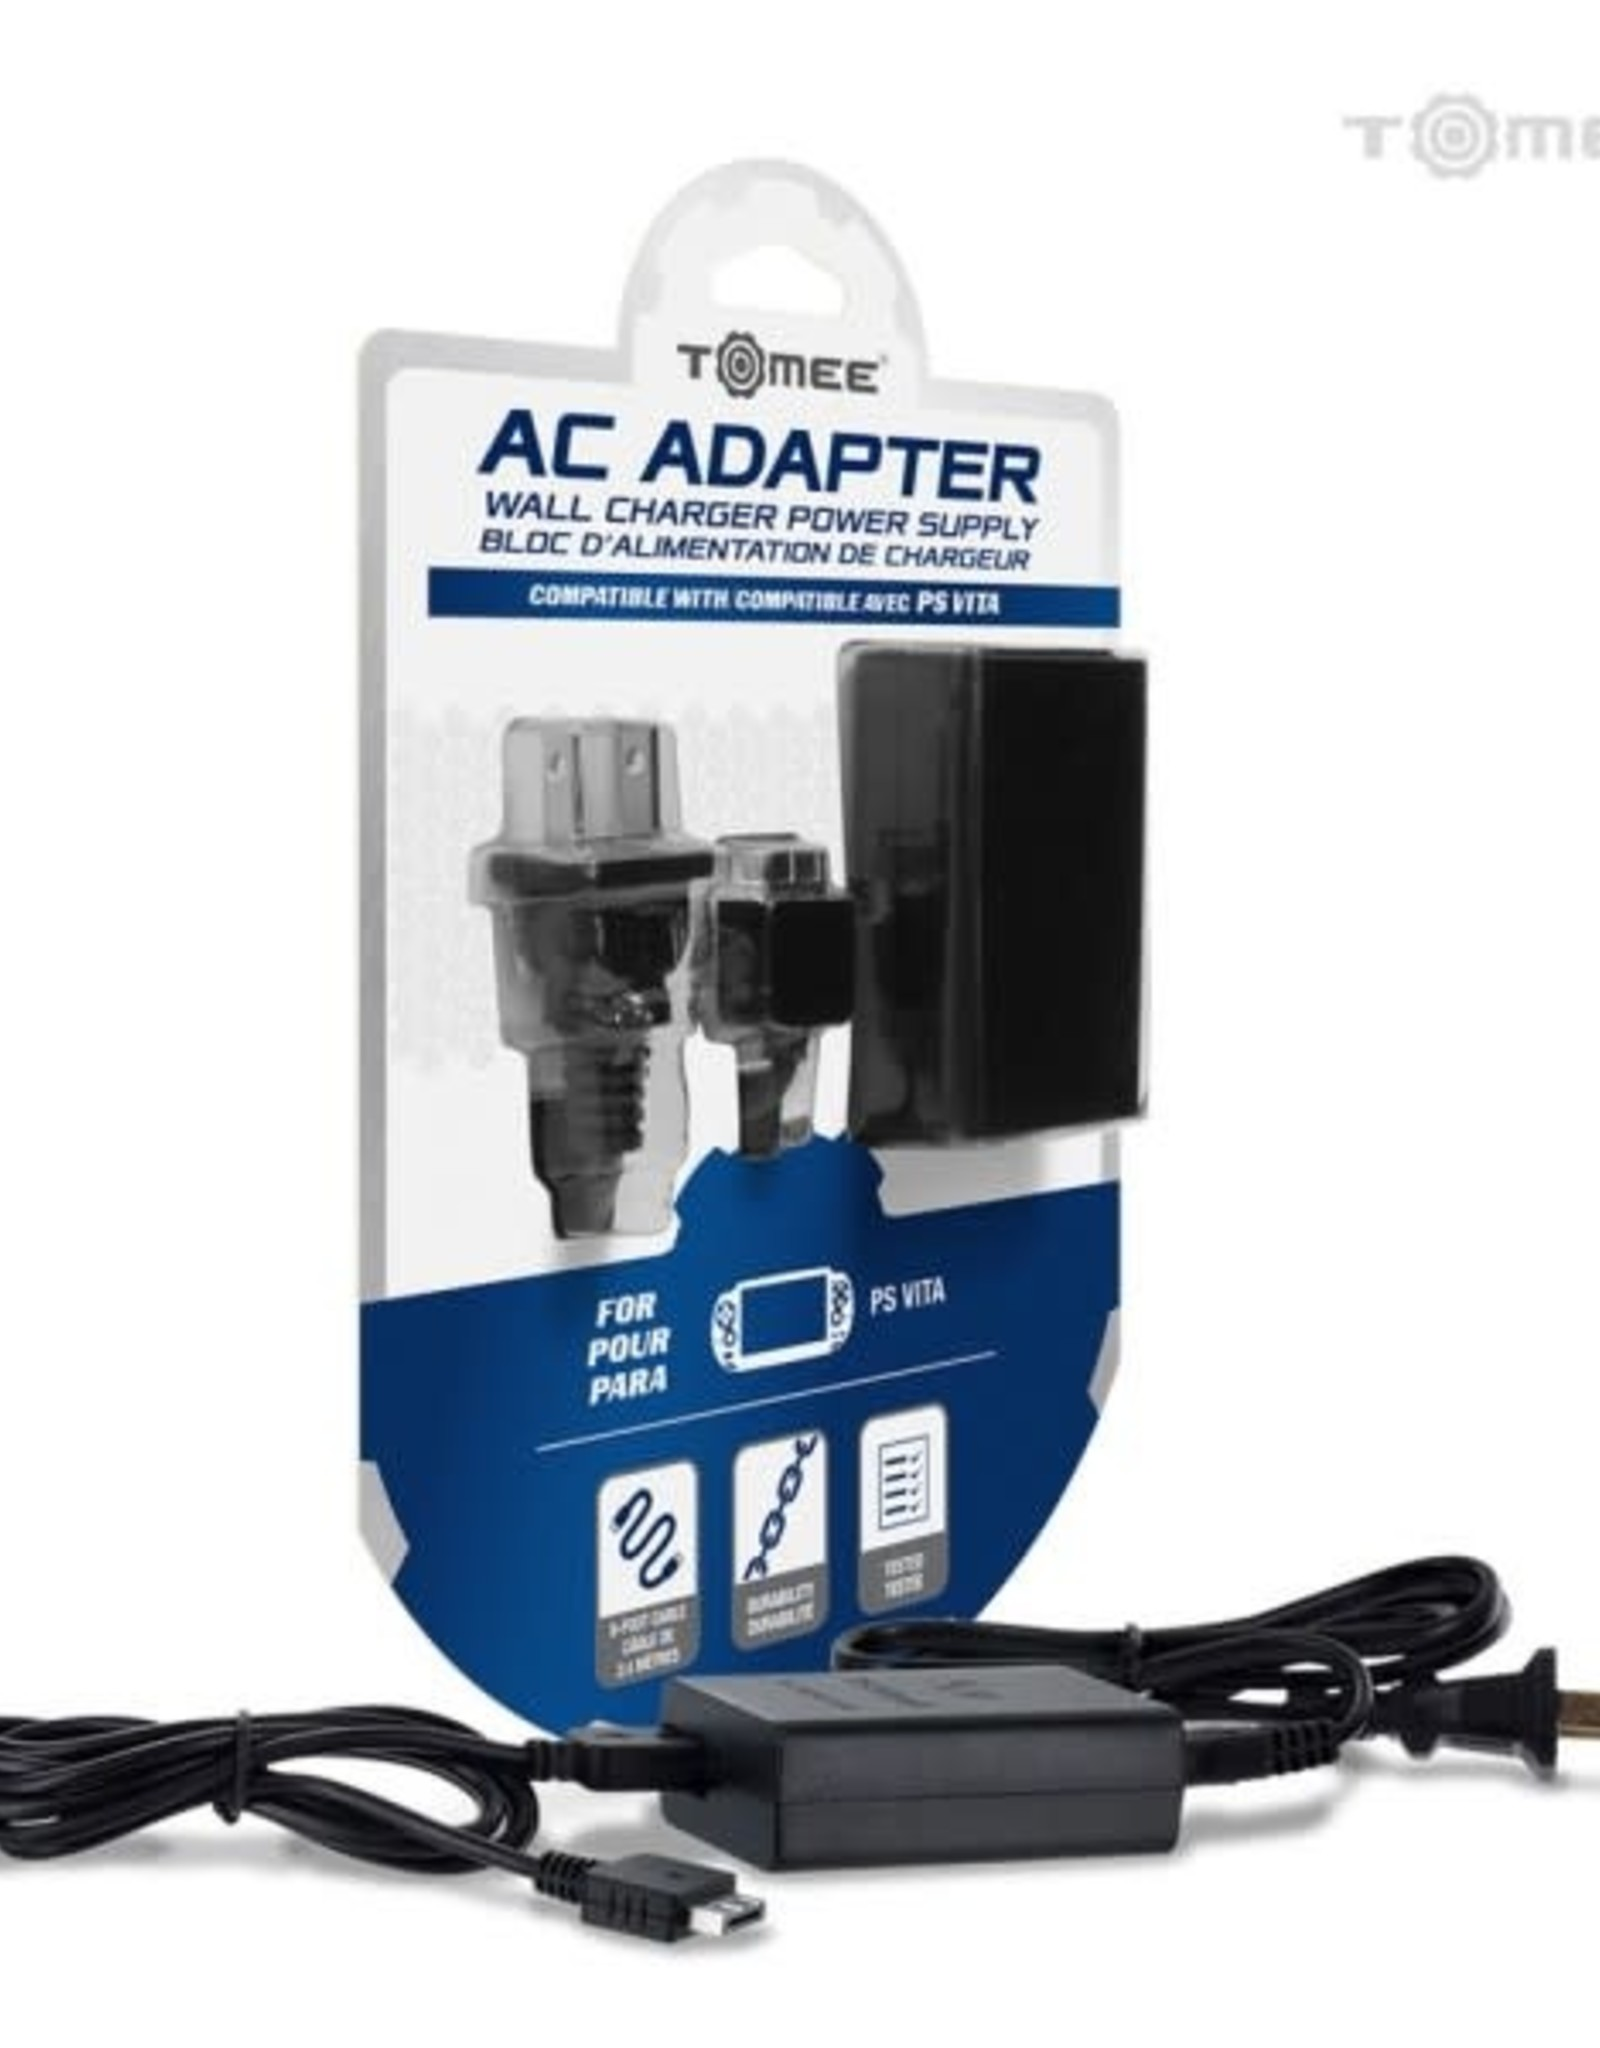 Tomee AC Adapter For PS Vita®